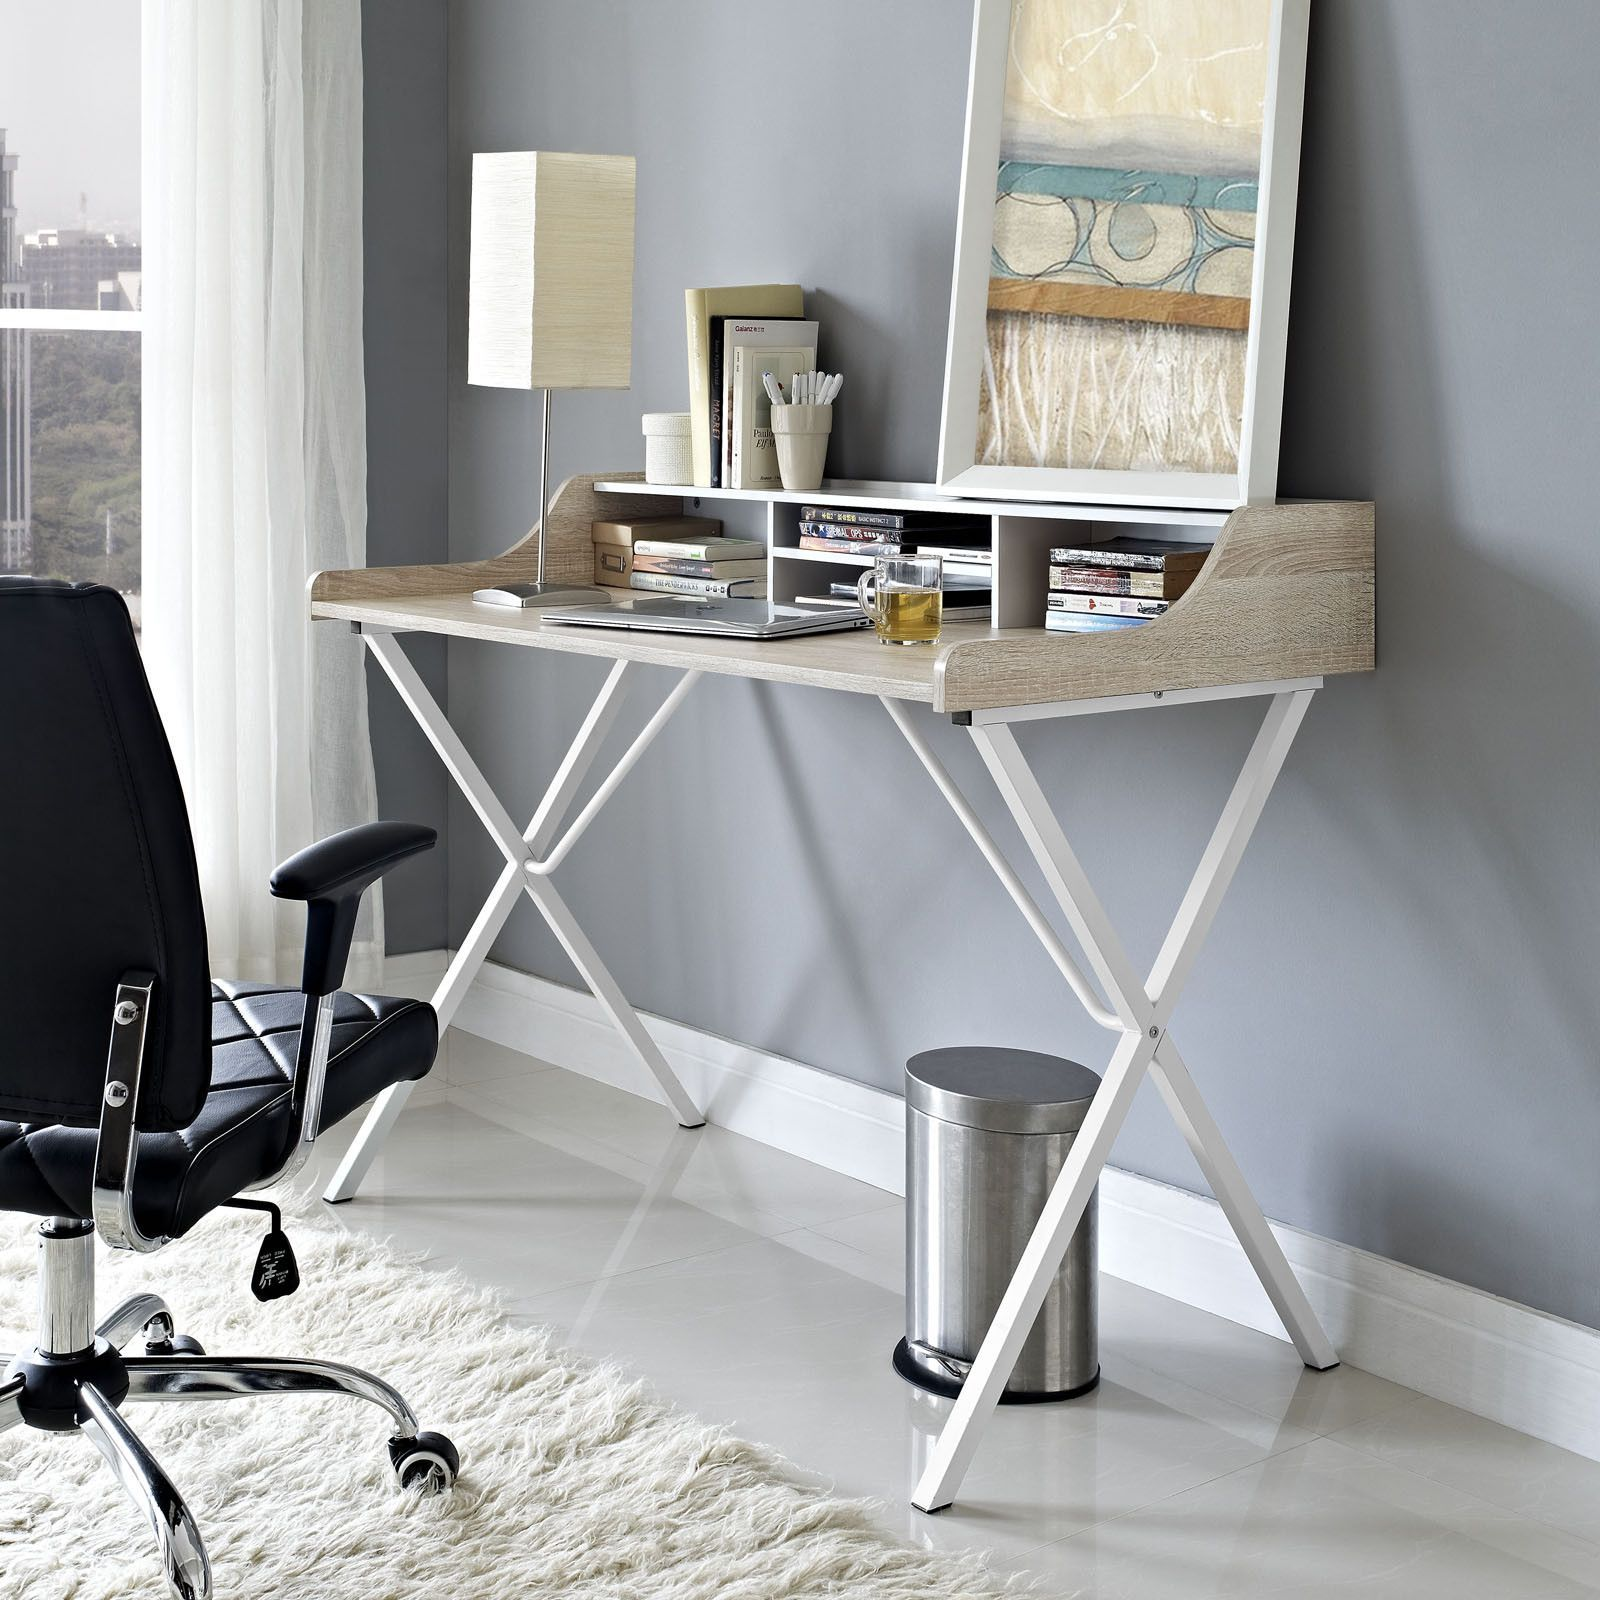 zen office furniture. Zen Office Desk Furniture S